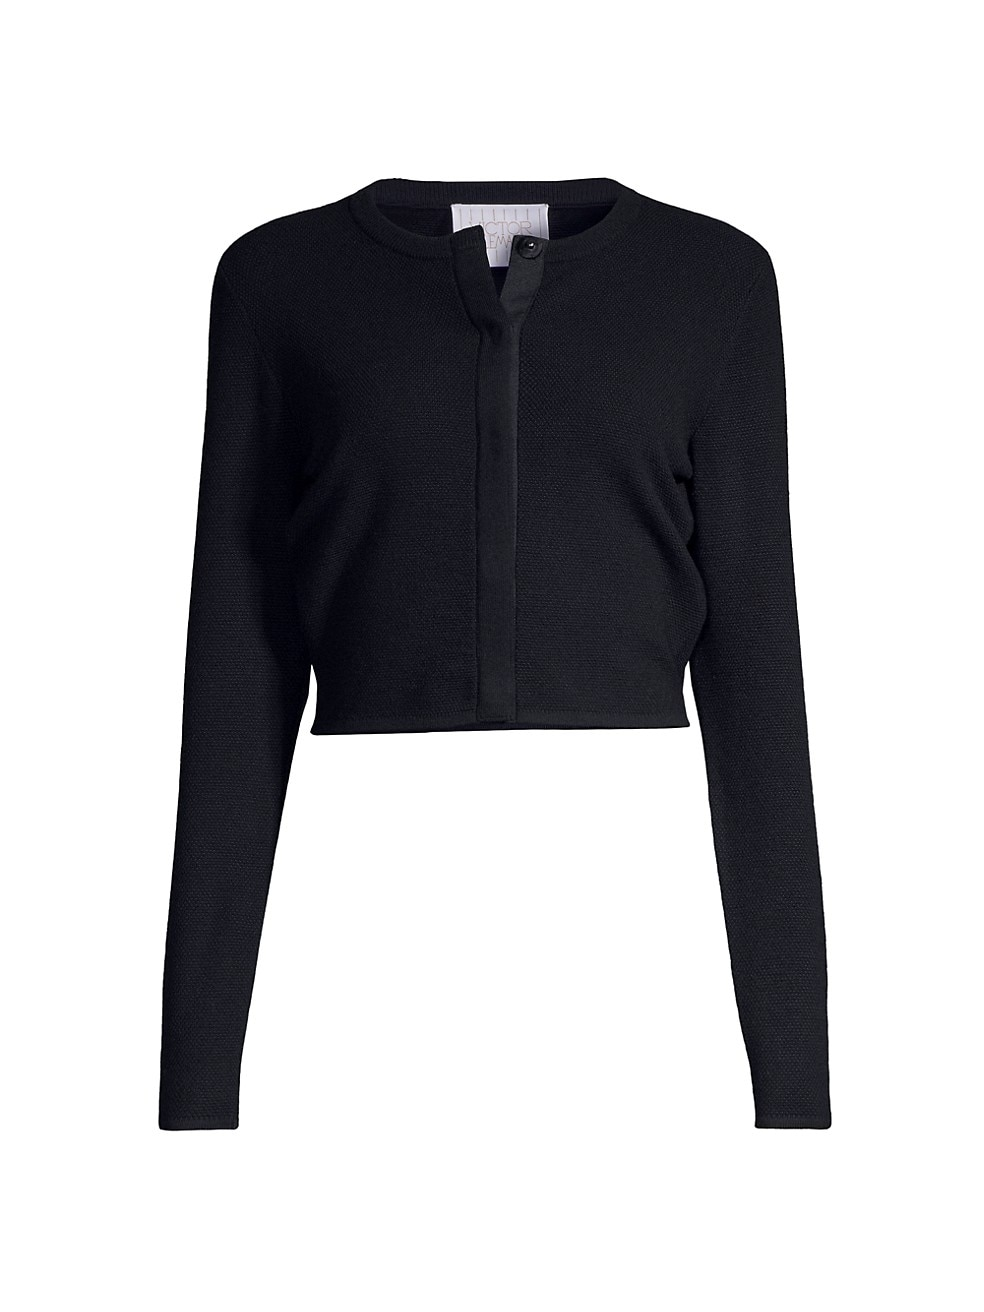 Ribbed Merino Wool Cardigan by Victor Glemaud, available on saksfifthavenue.com for $395 Selena Gomez Outerwear Exact Product